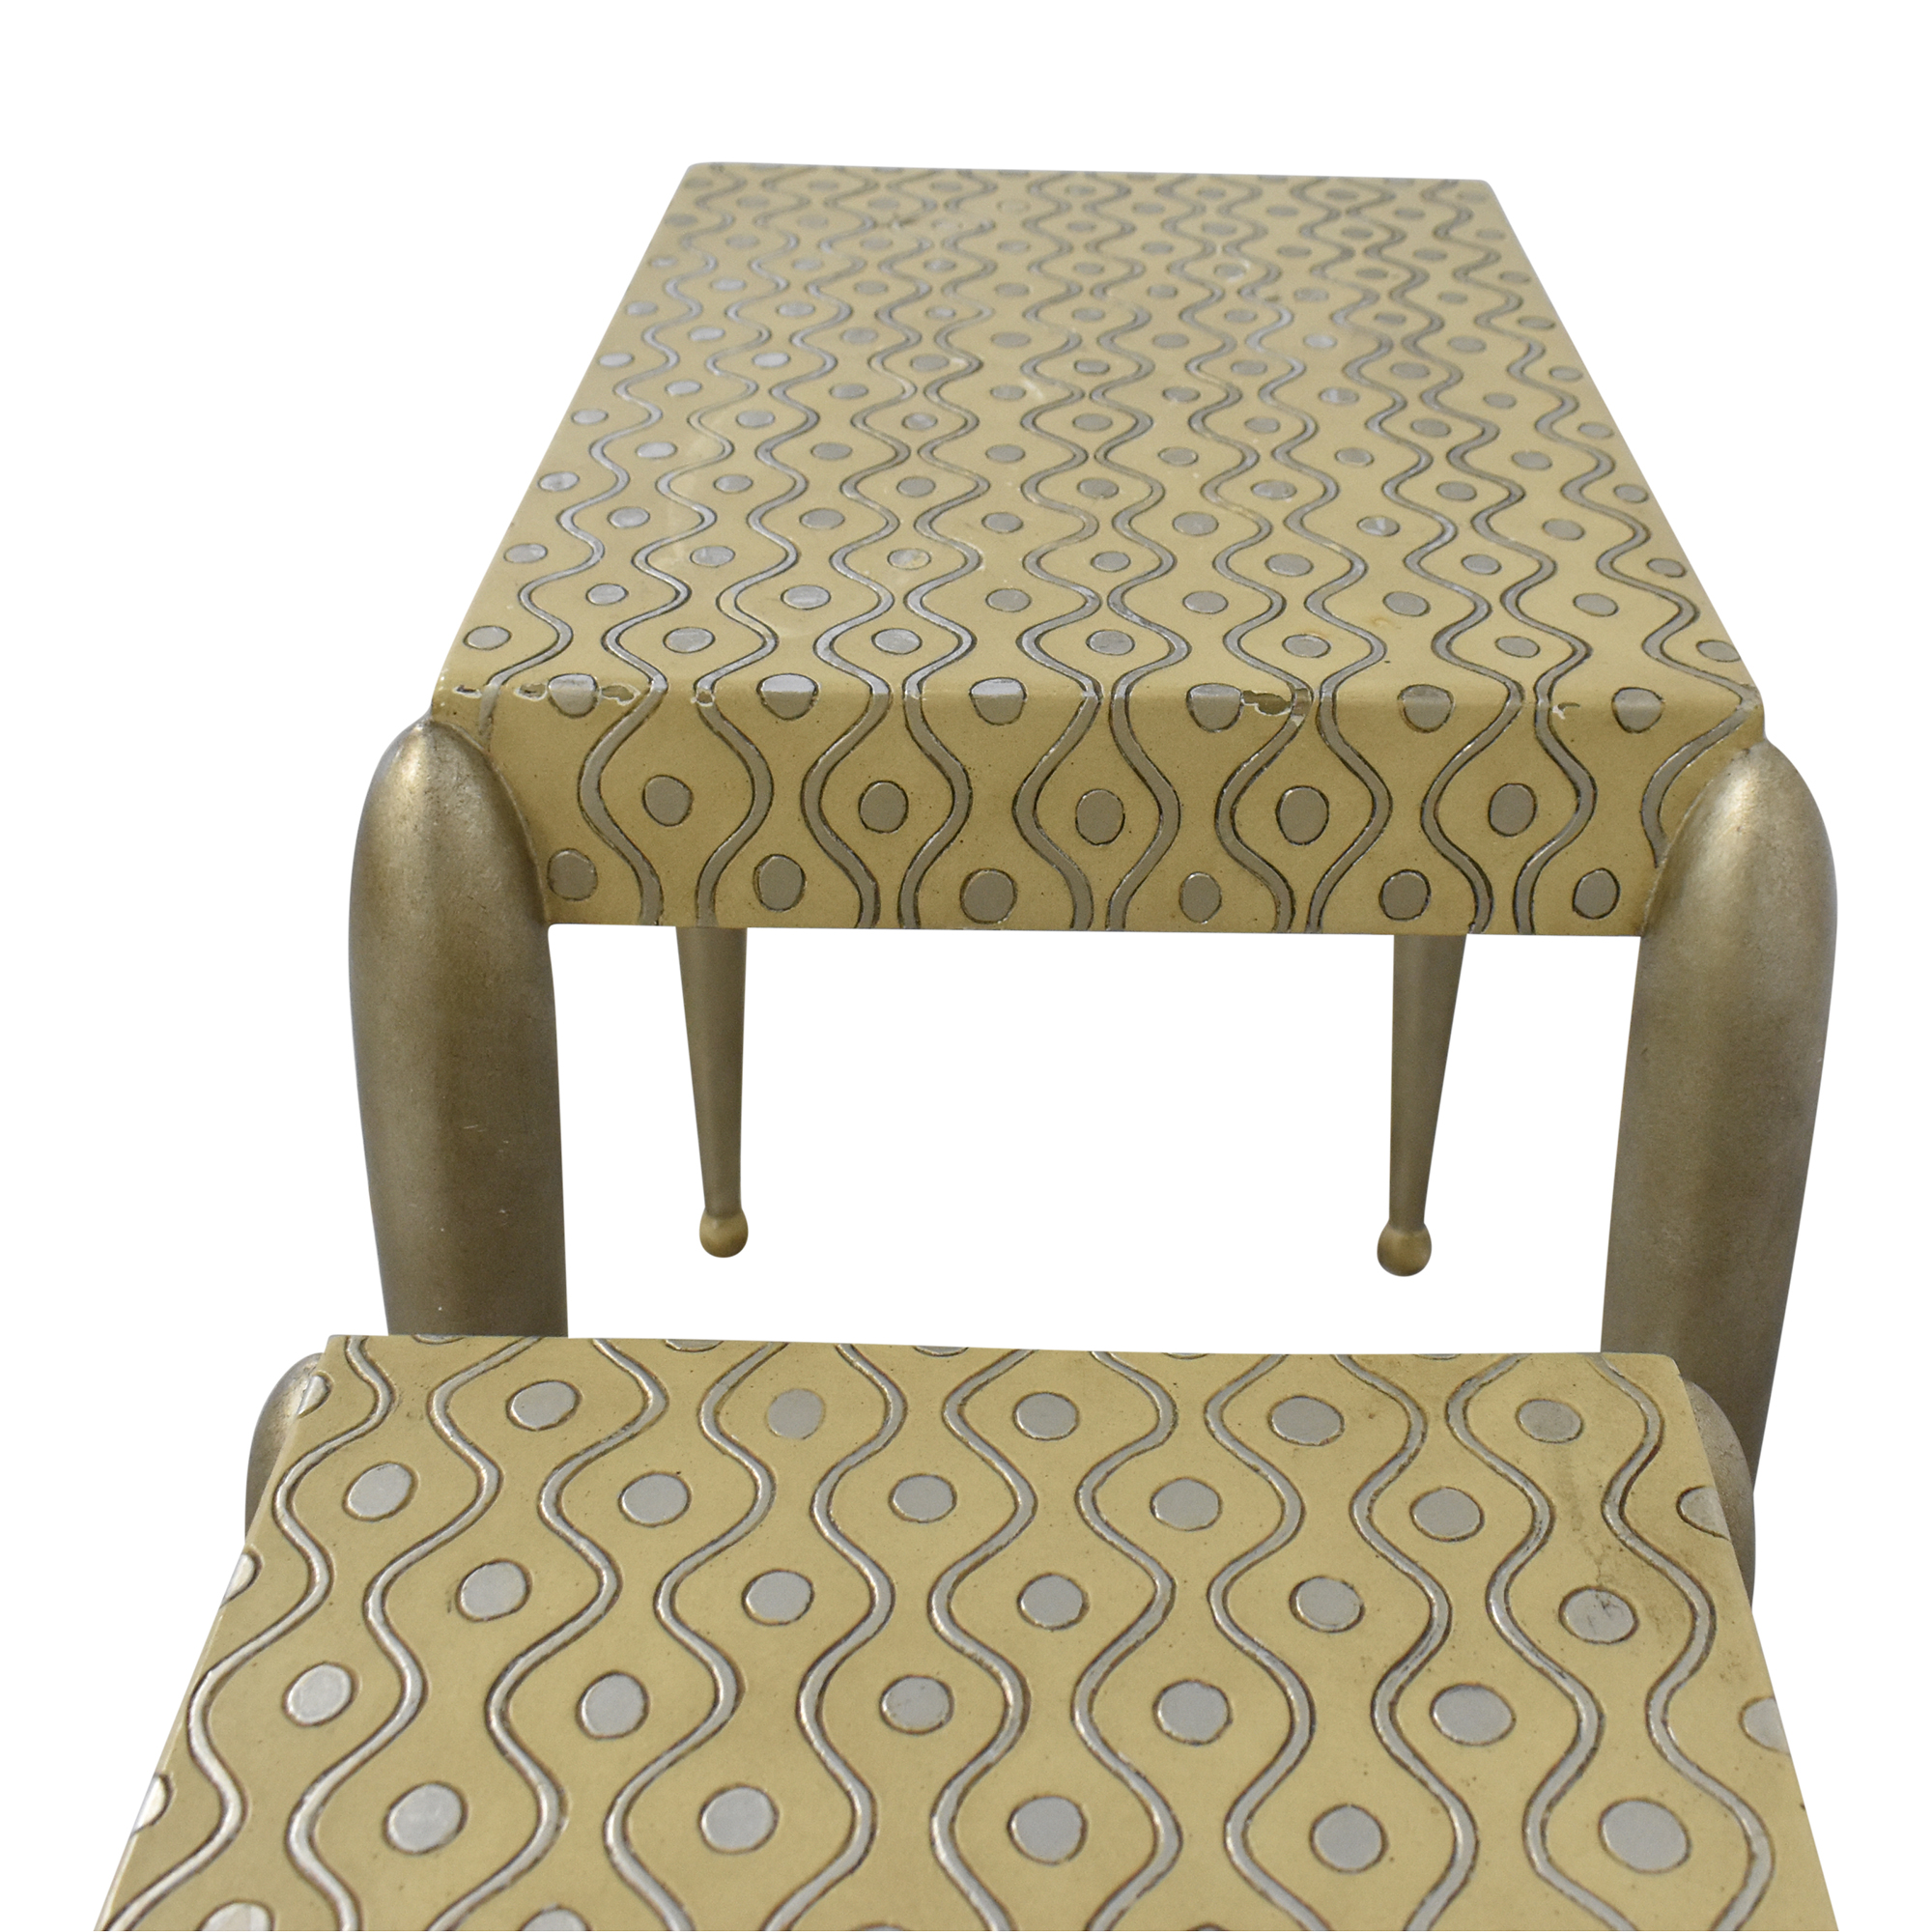 ABC Carpet & Home African Inspired Nesting Tables with Drawers silver, beige